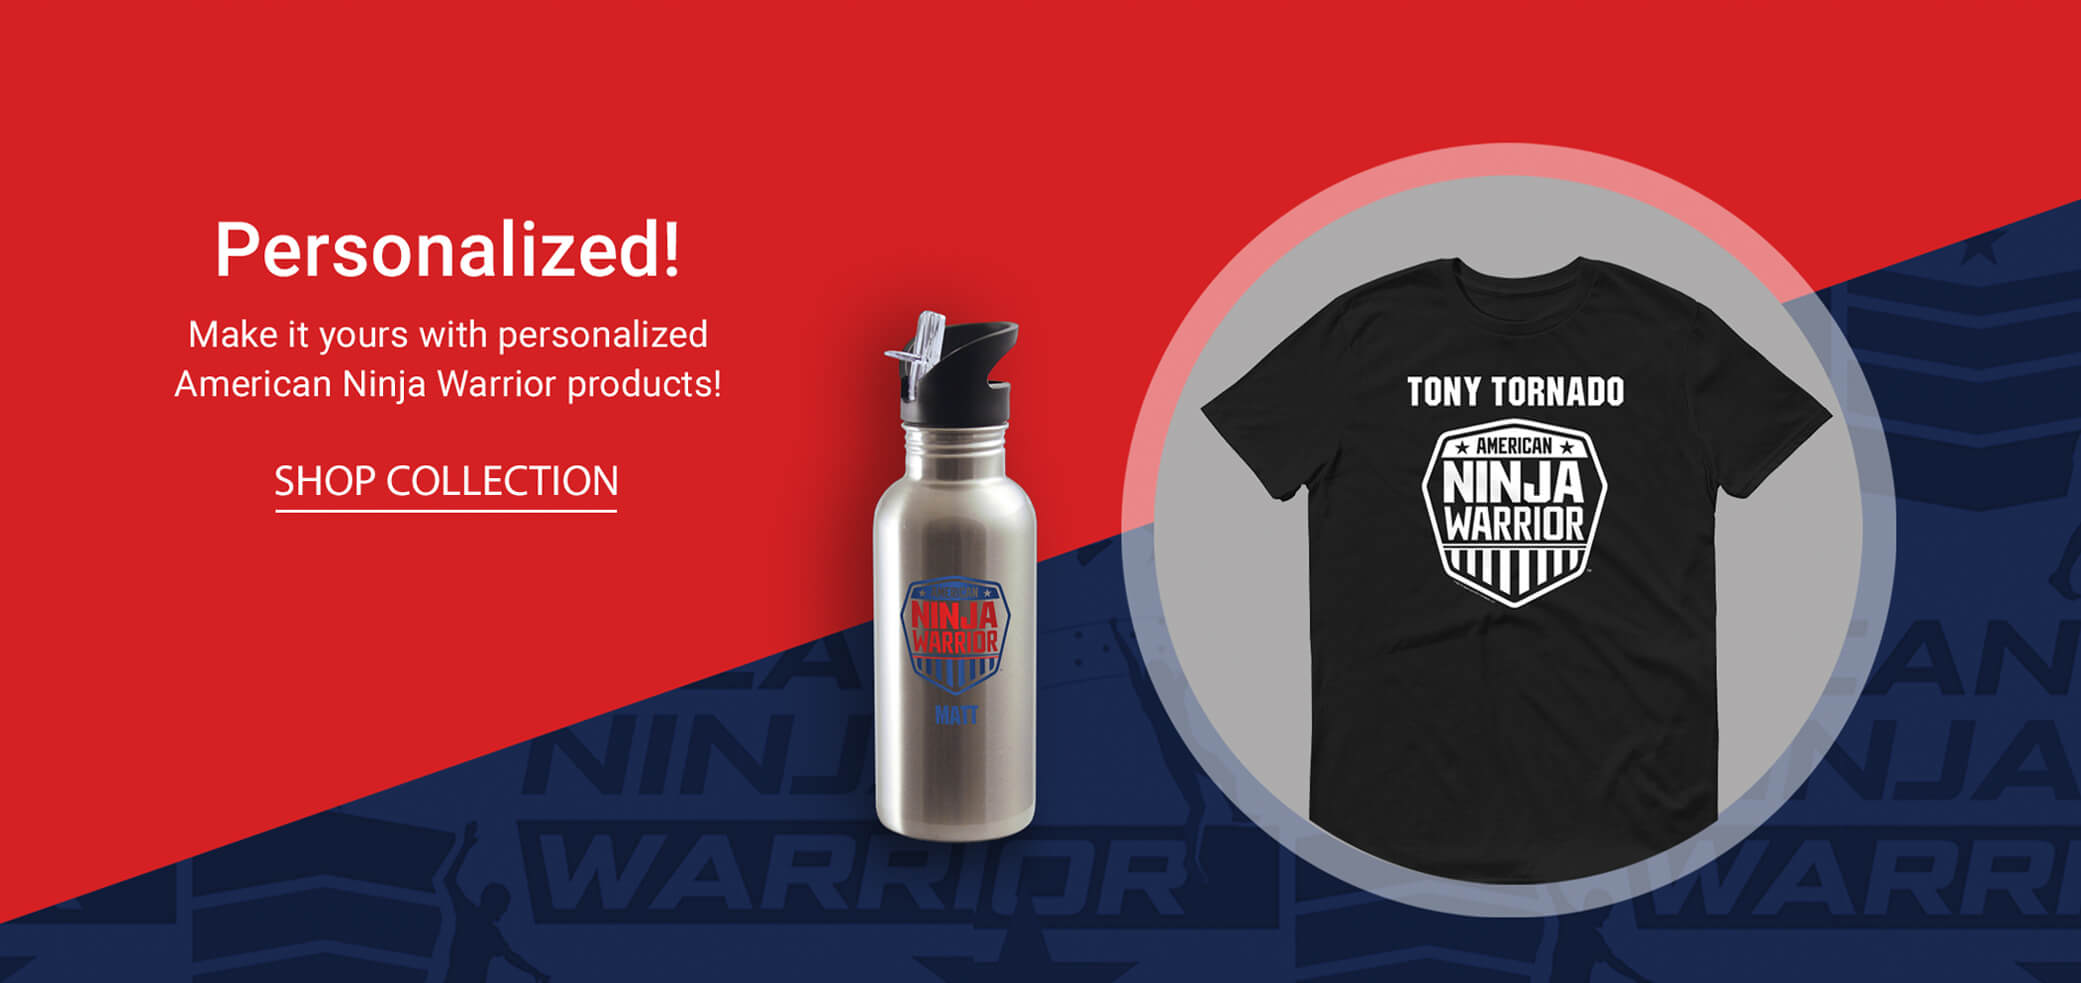 American Ninja Warrior Personalized Gifts